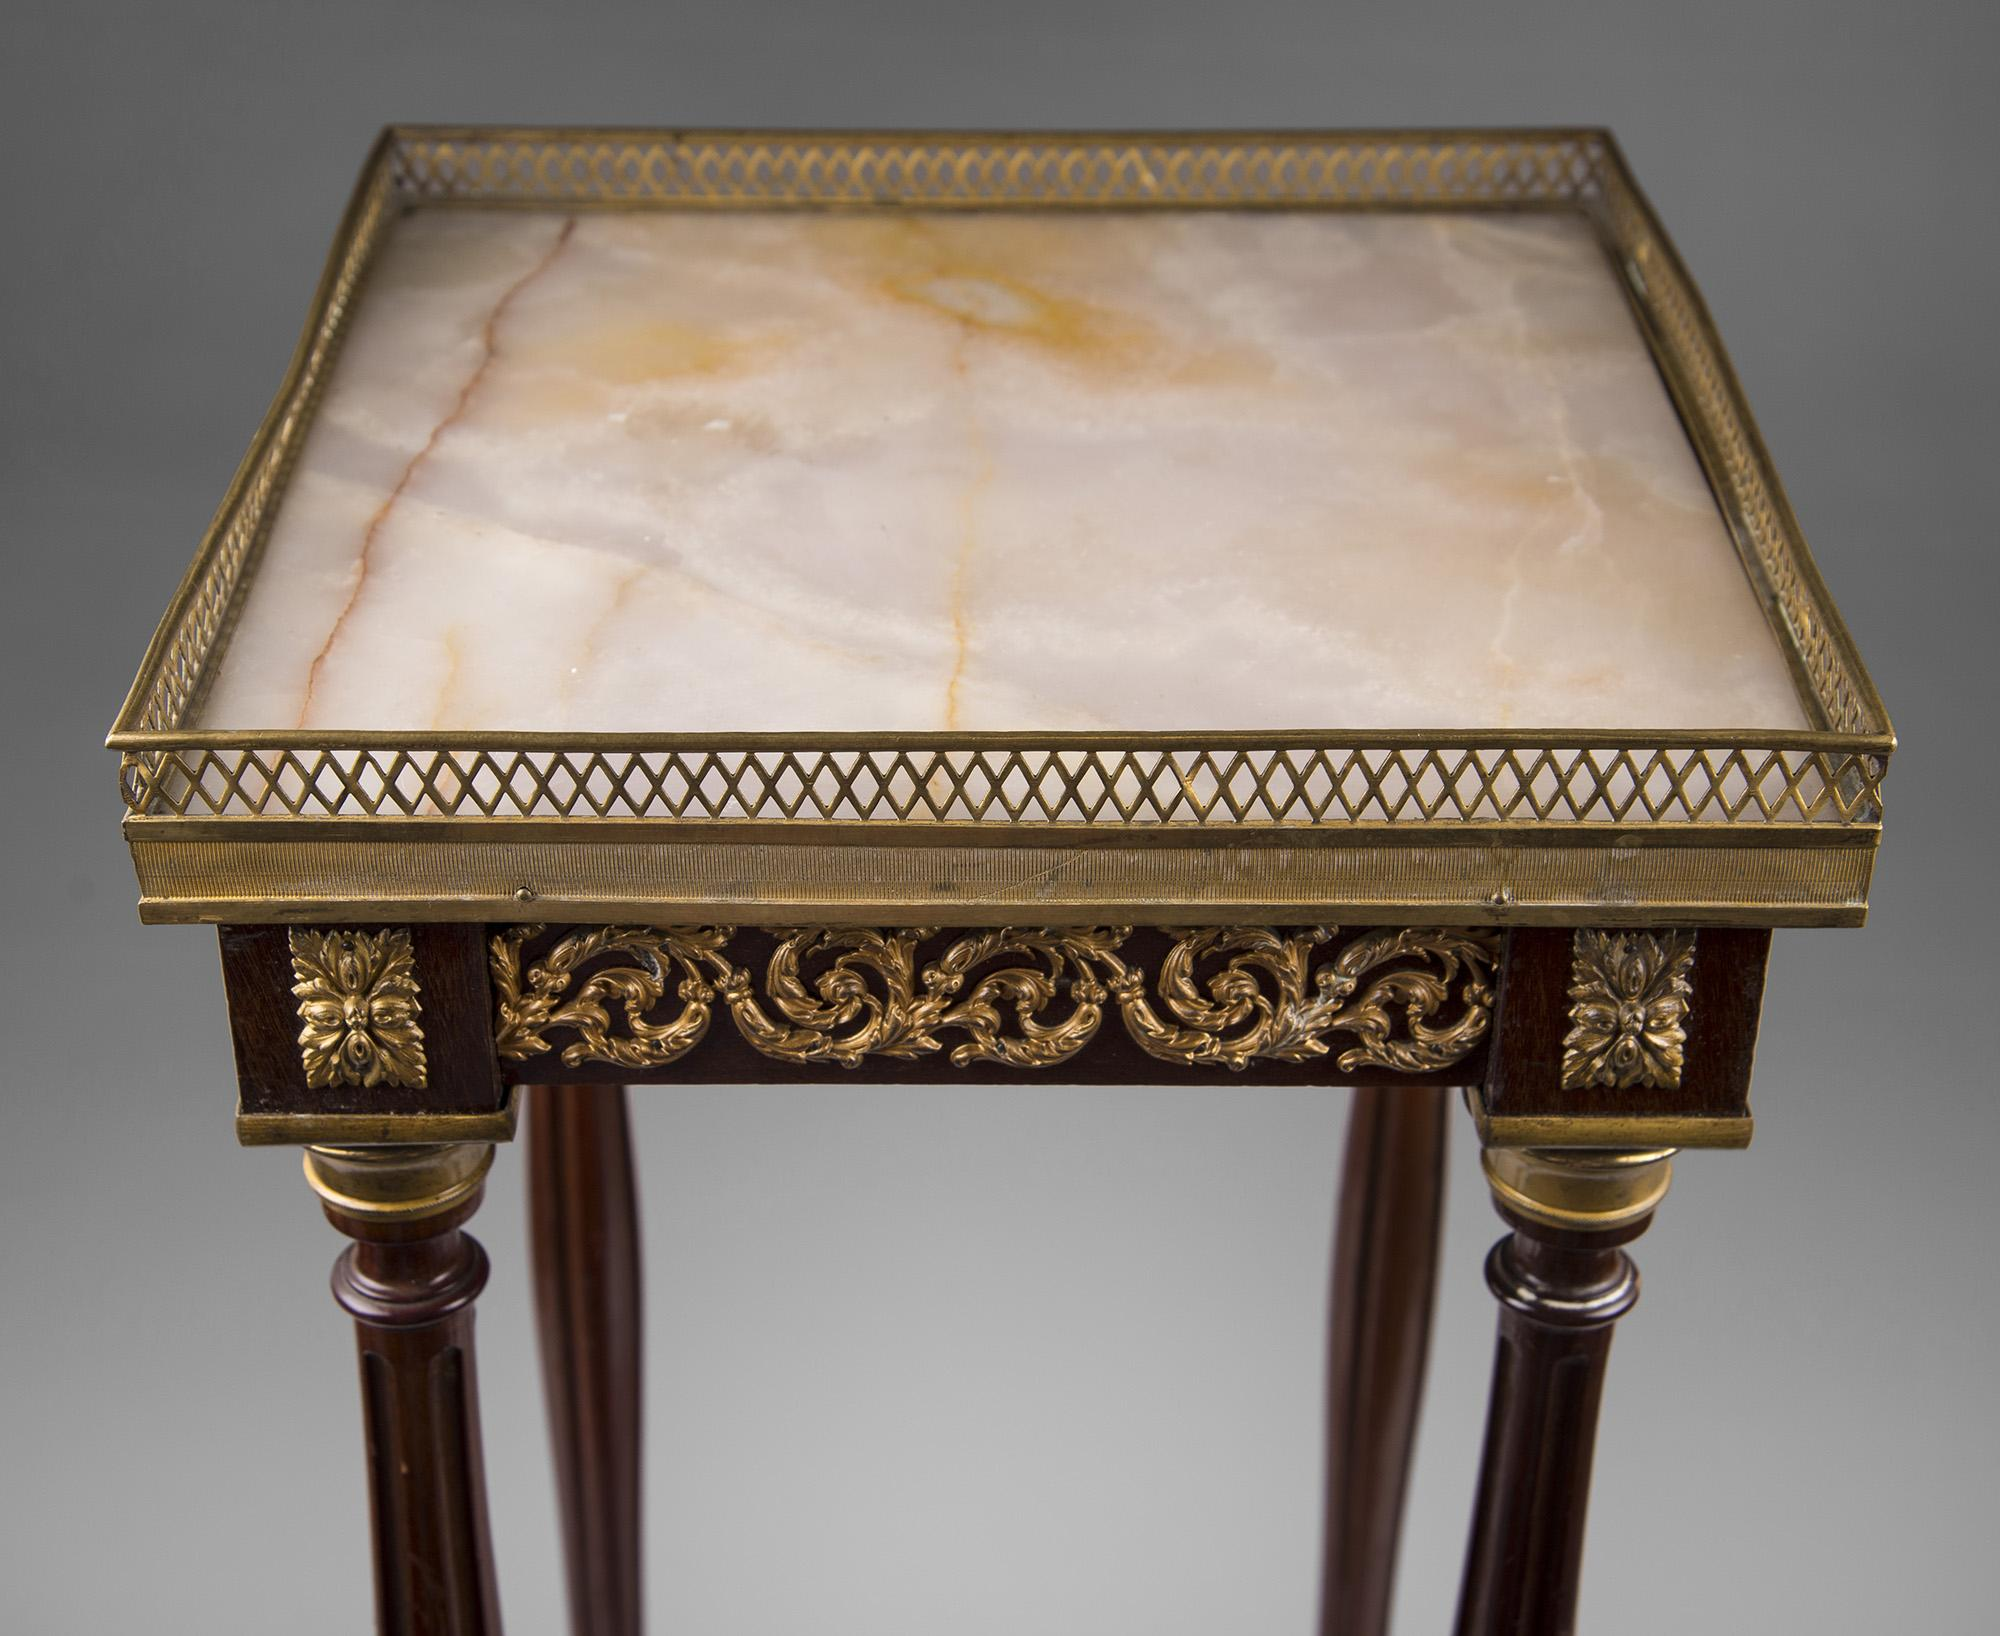 19th C Louis XVI Style Ormolu Side Table Fern Stand from